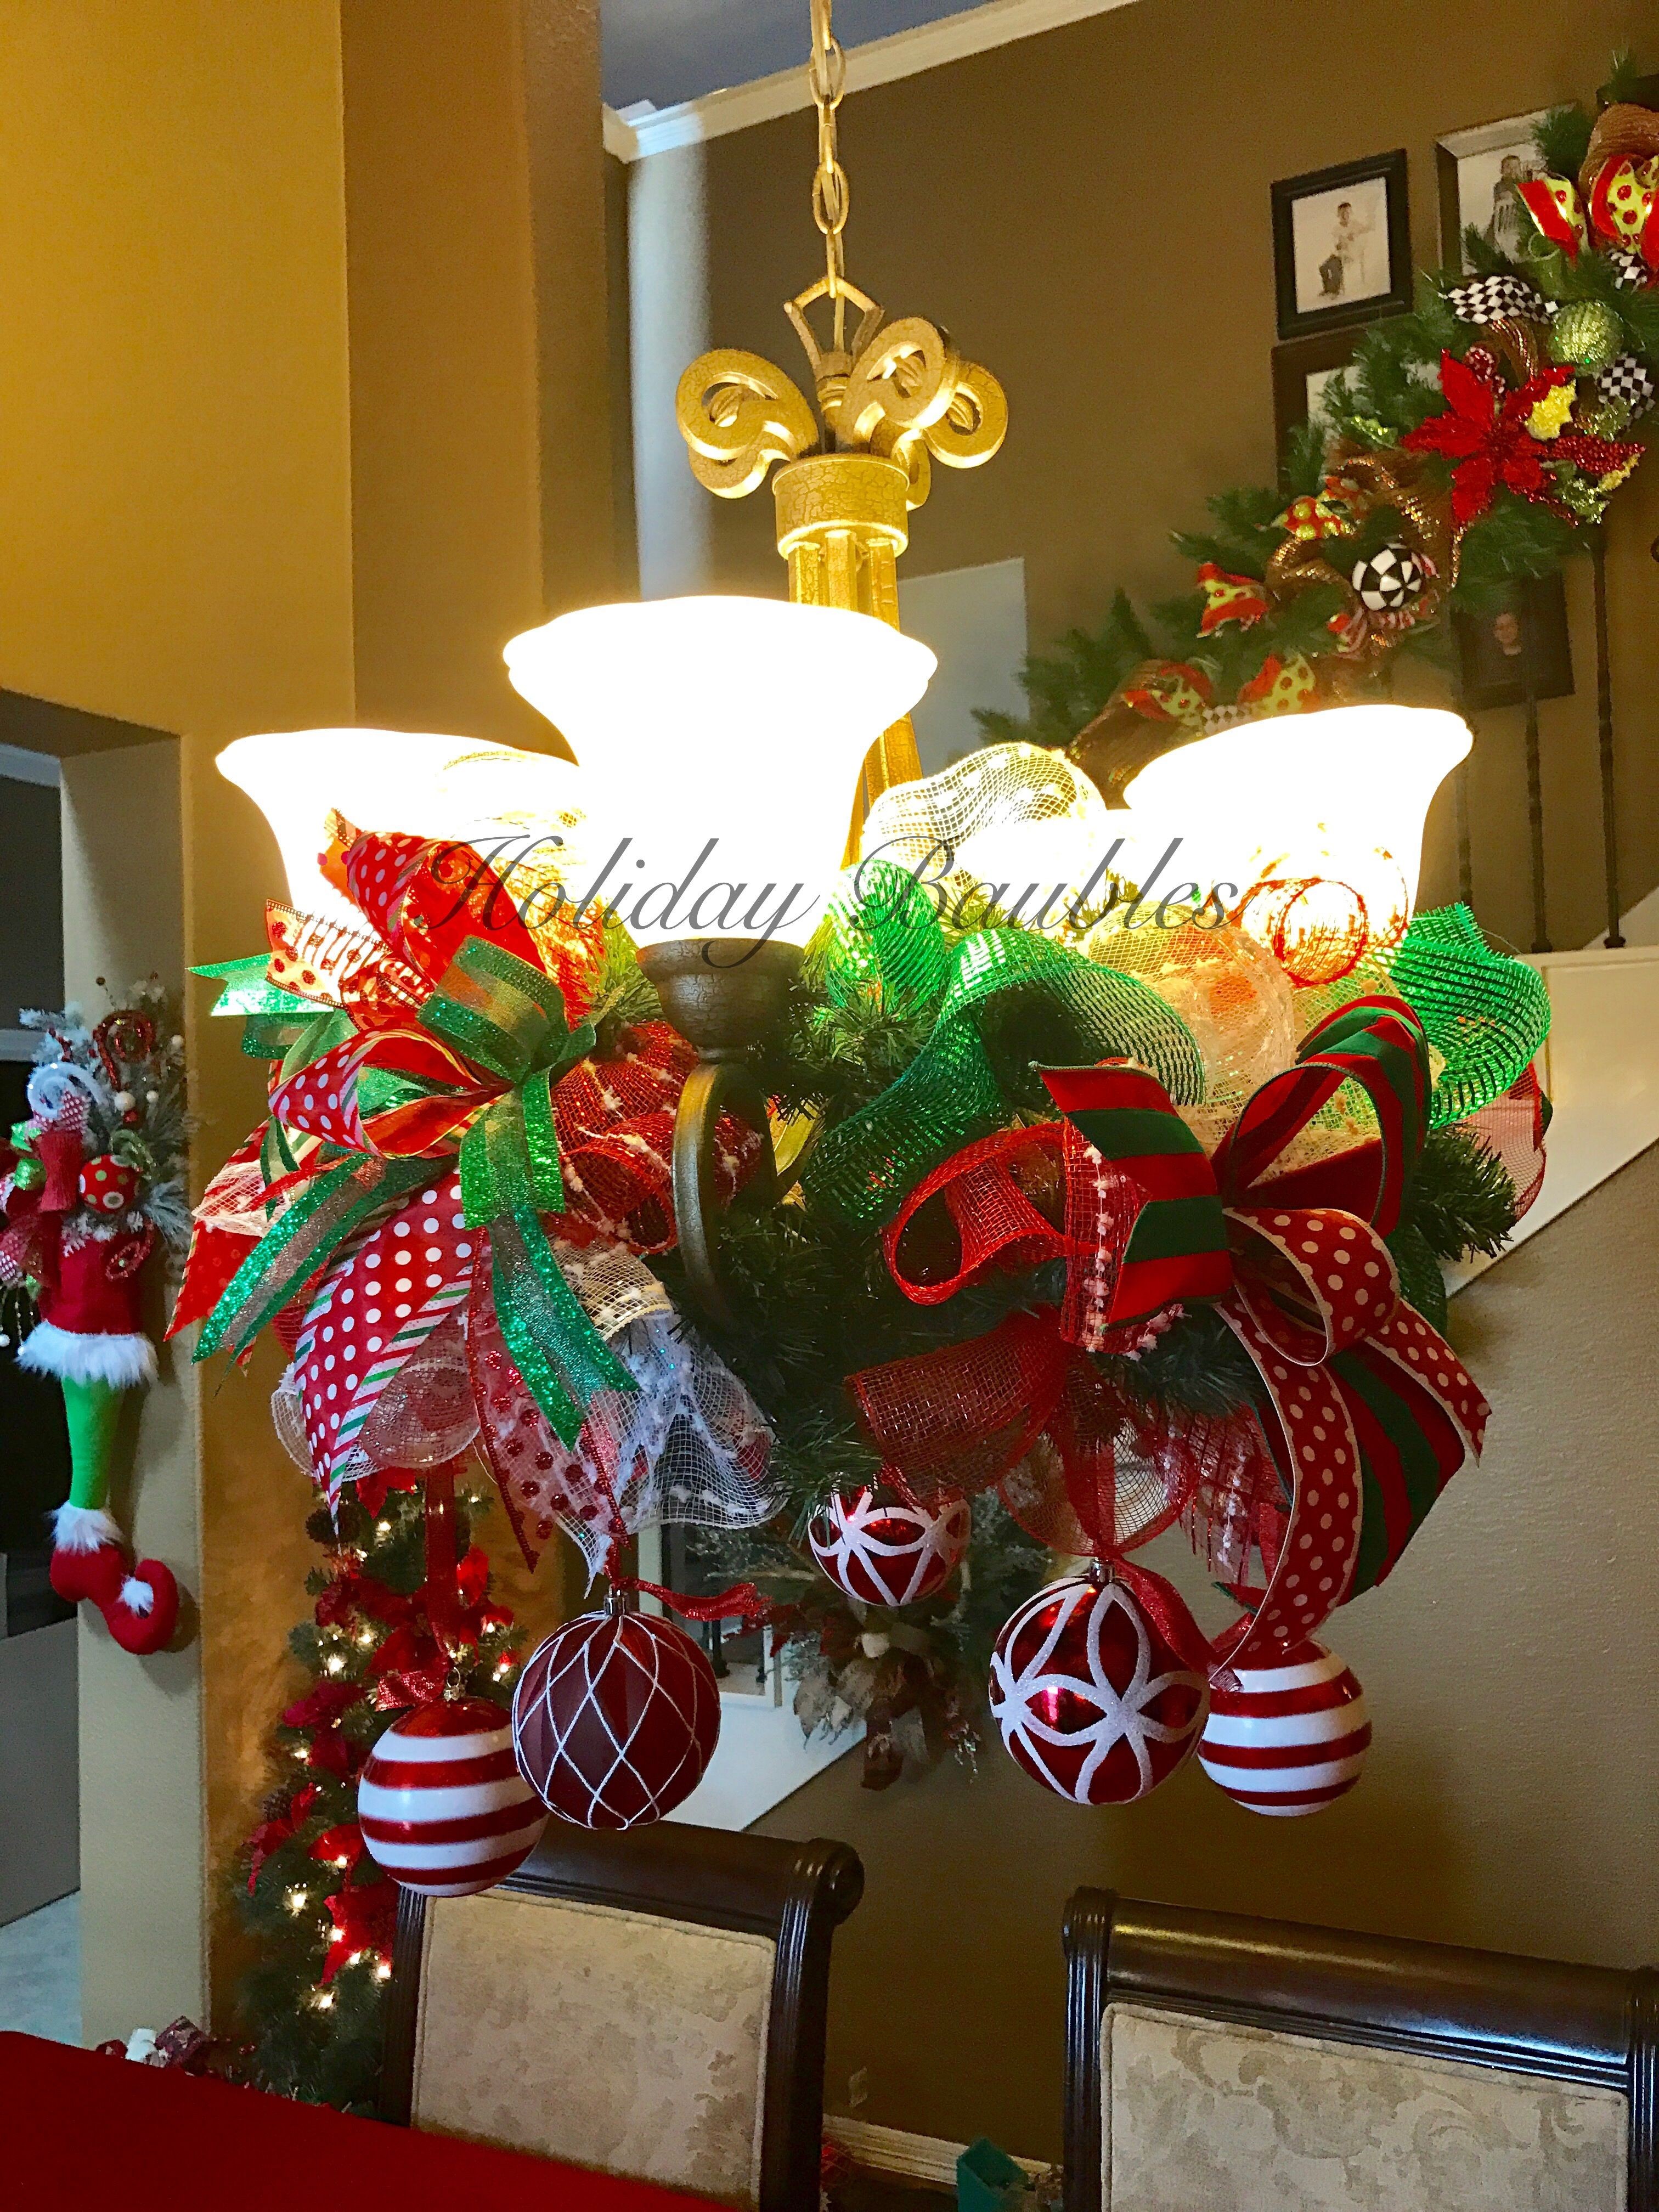 Christmas Decor Ideas For Apartment Living Room: Chandelier Garland By Holiday Baubles